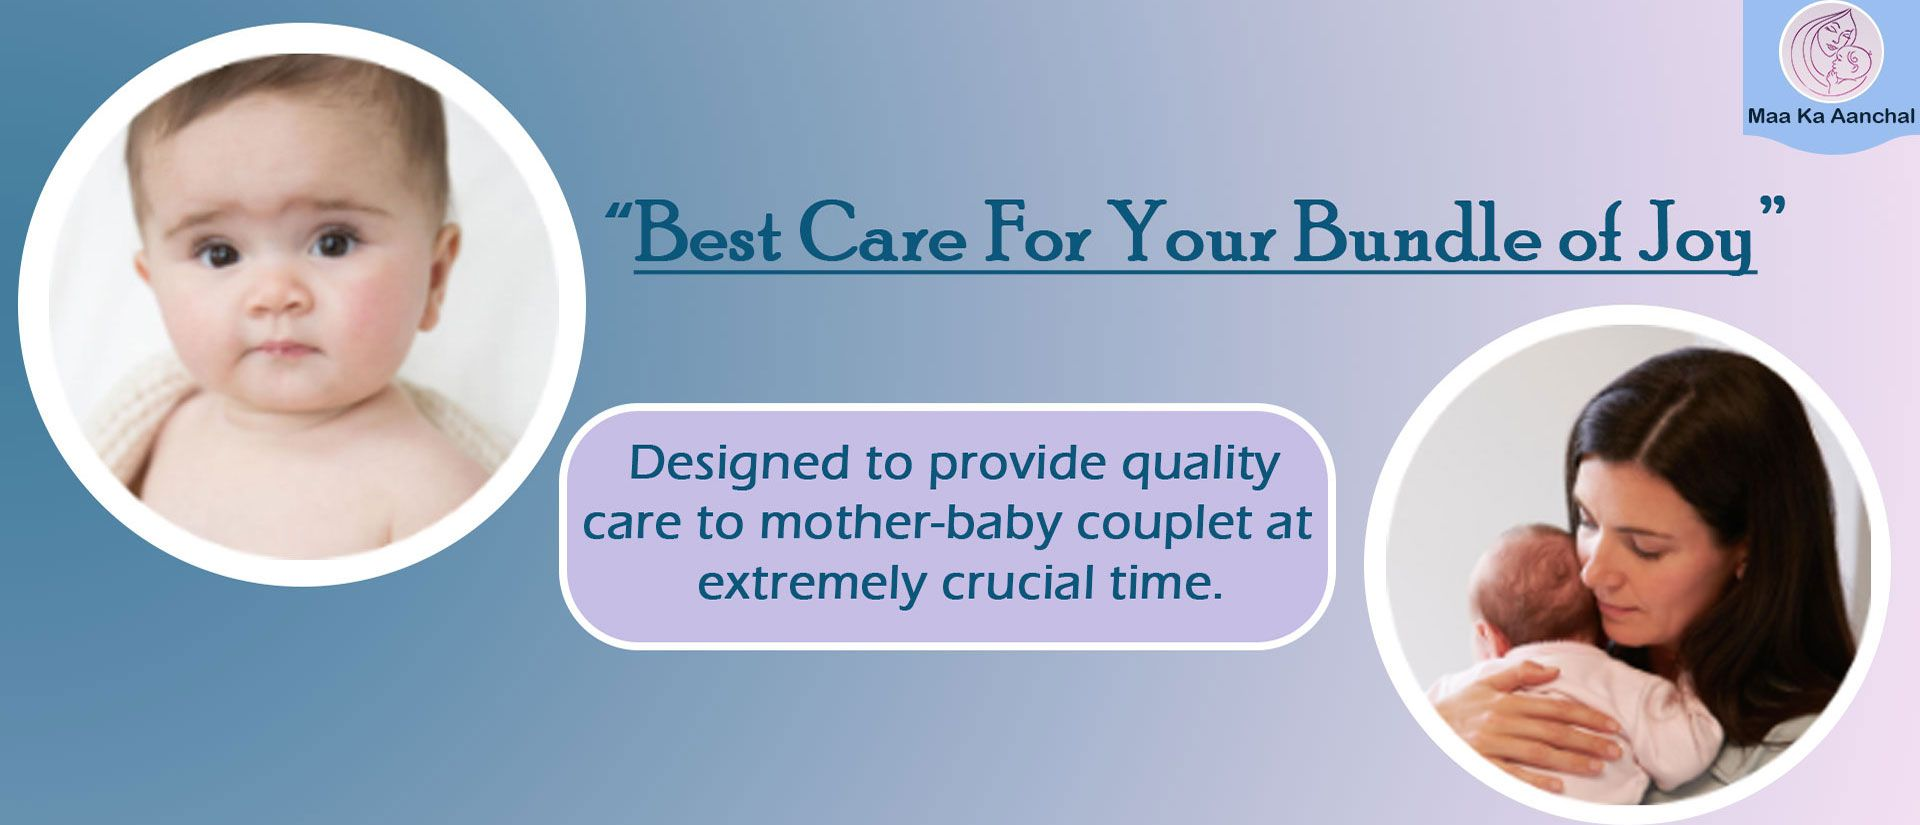 If you feel that a member of your family may benefit from